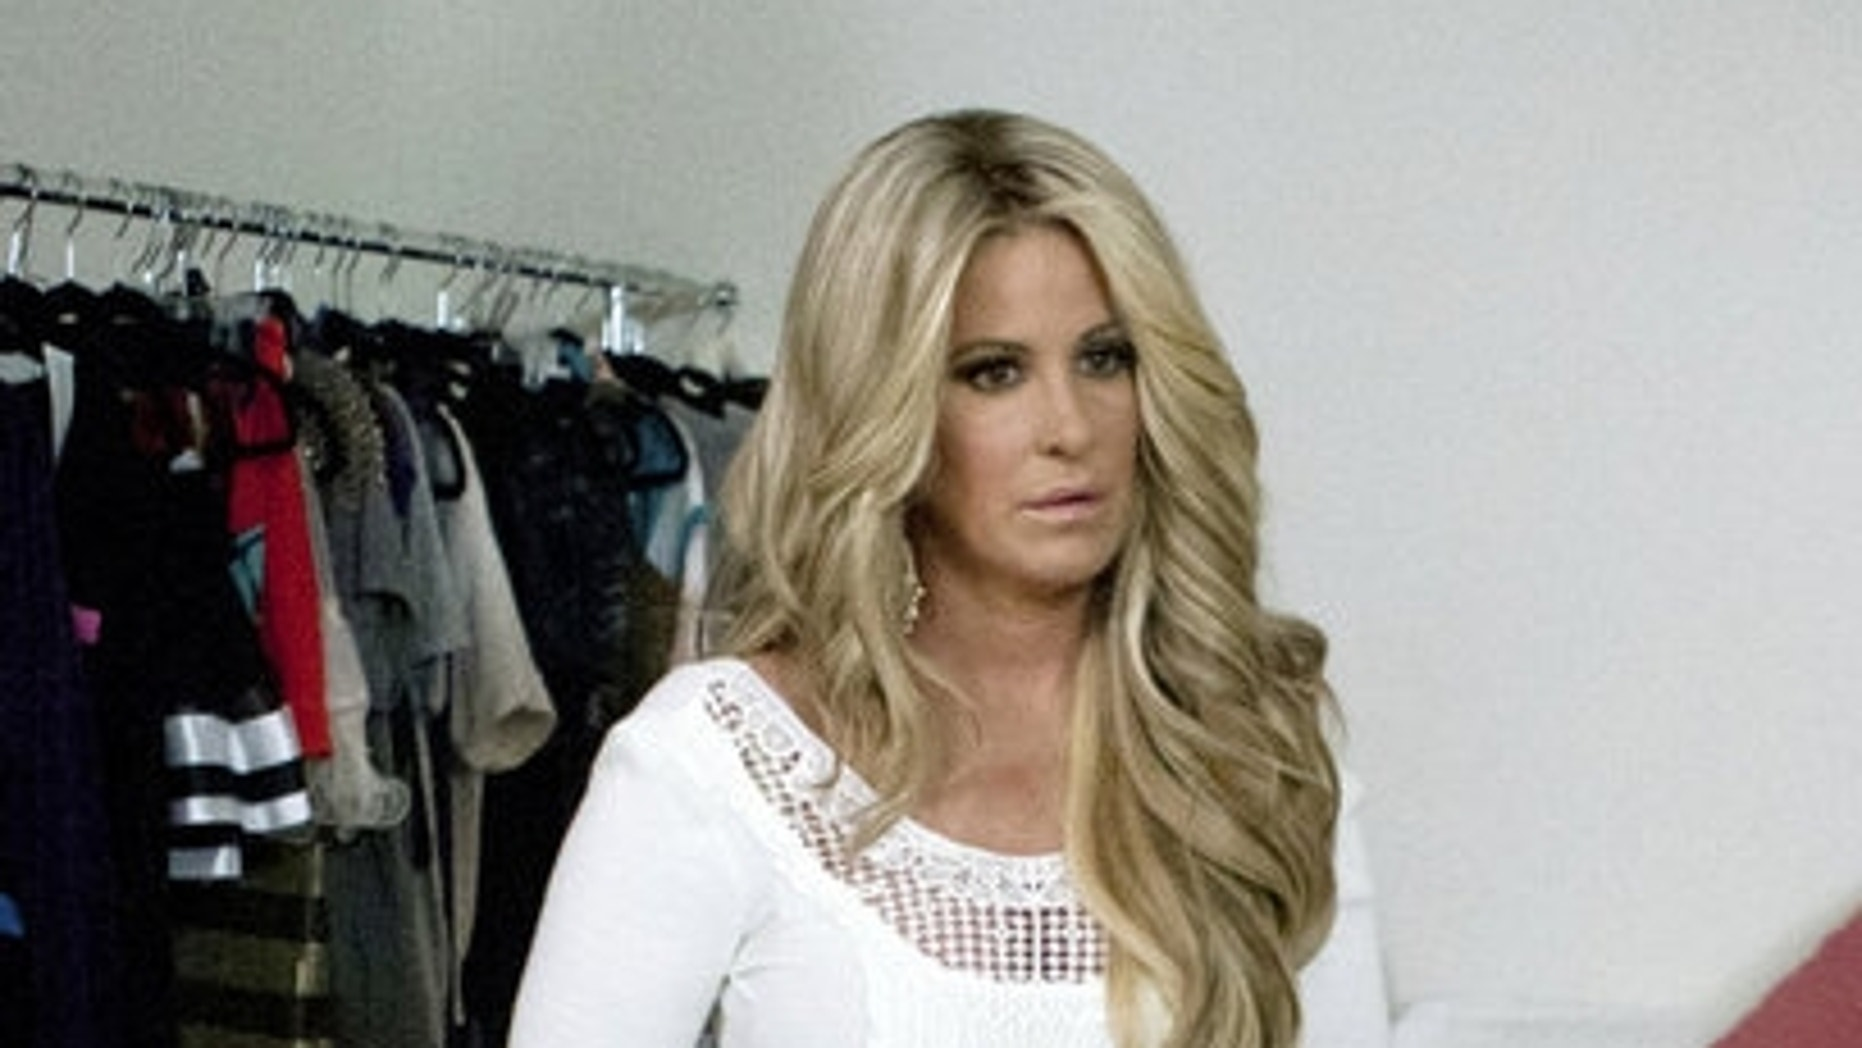 """Kim Zolciak is shown on Bravo's """"Don't Be Tardy."""" The reality star was photographed smoking while pregnant."""